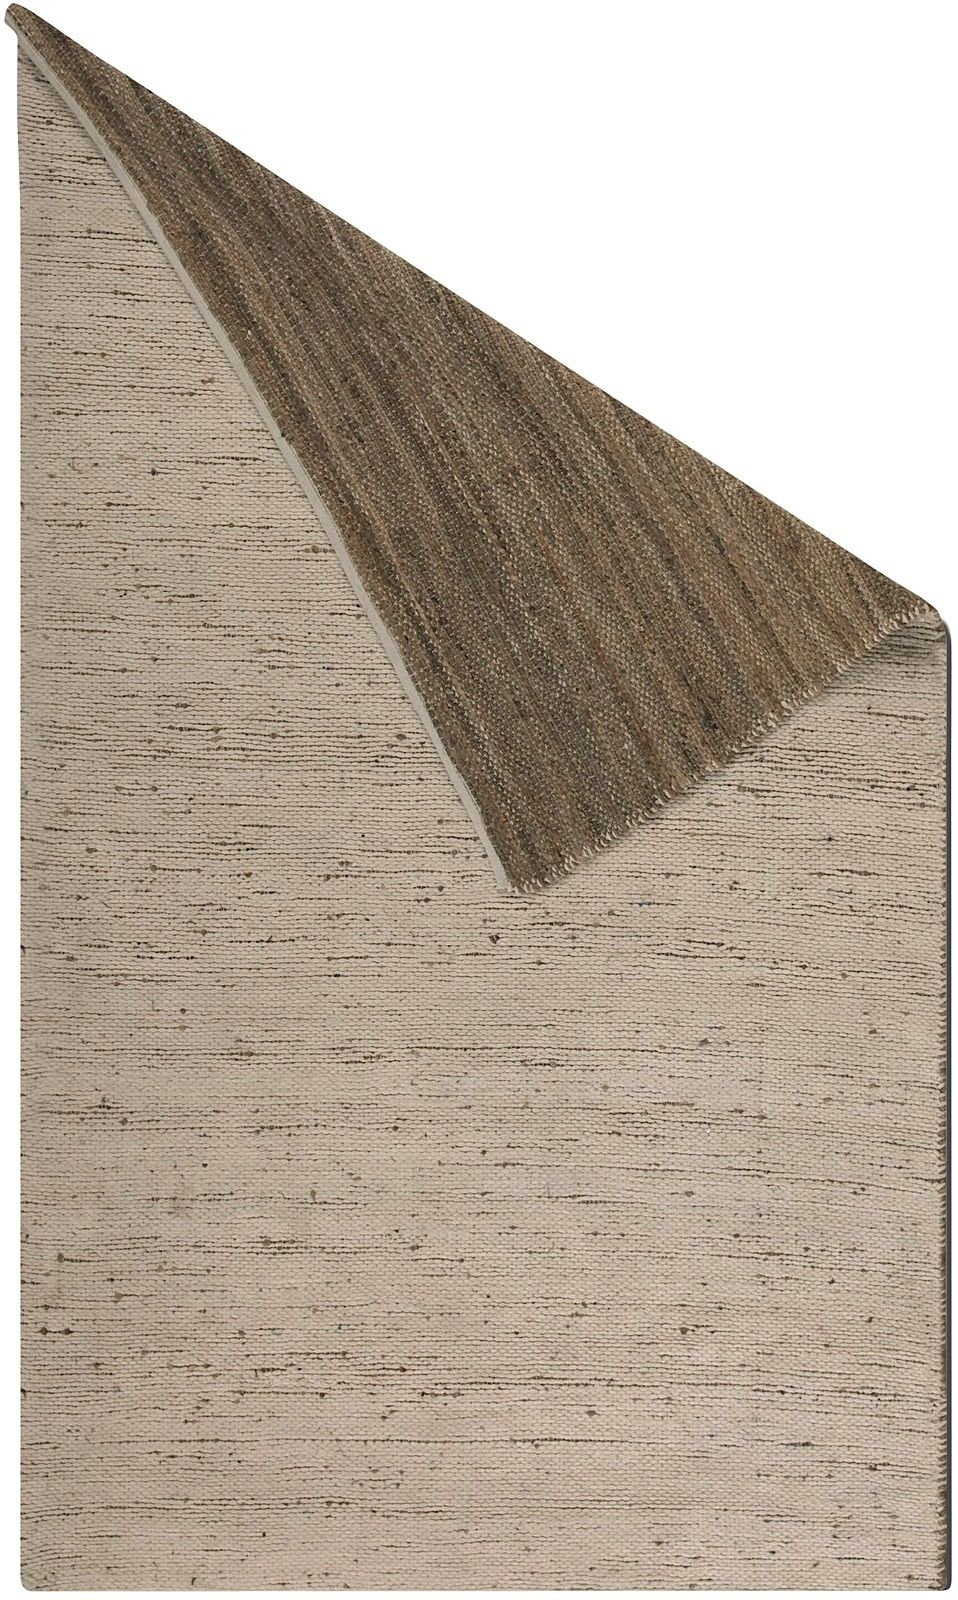 uttermost barhara contemporary area rug collection